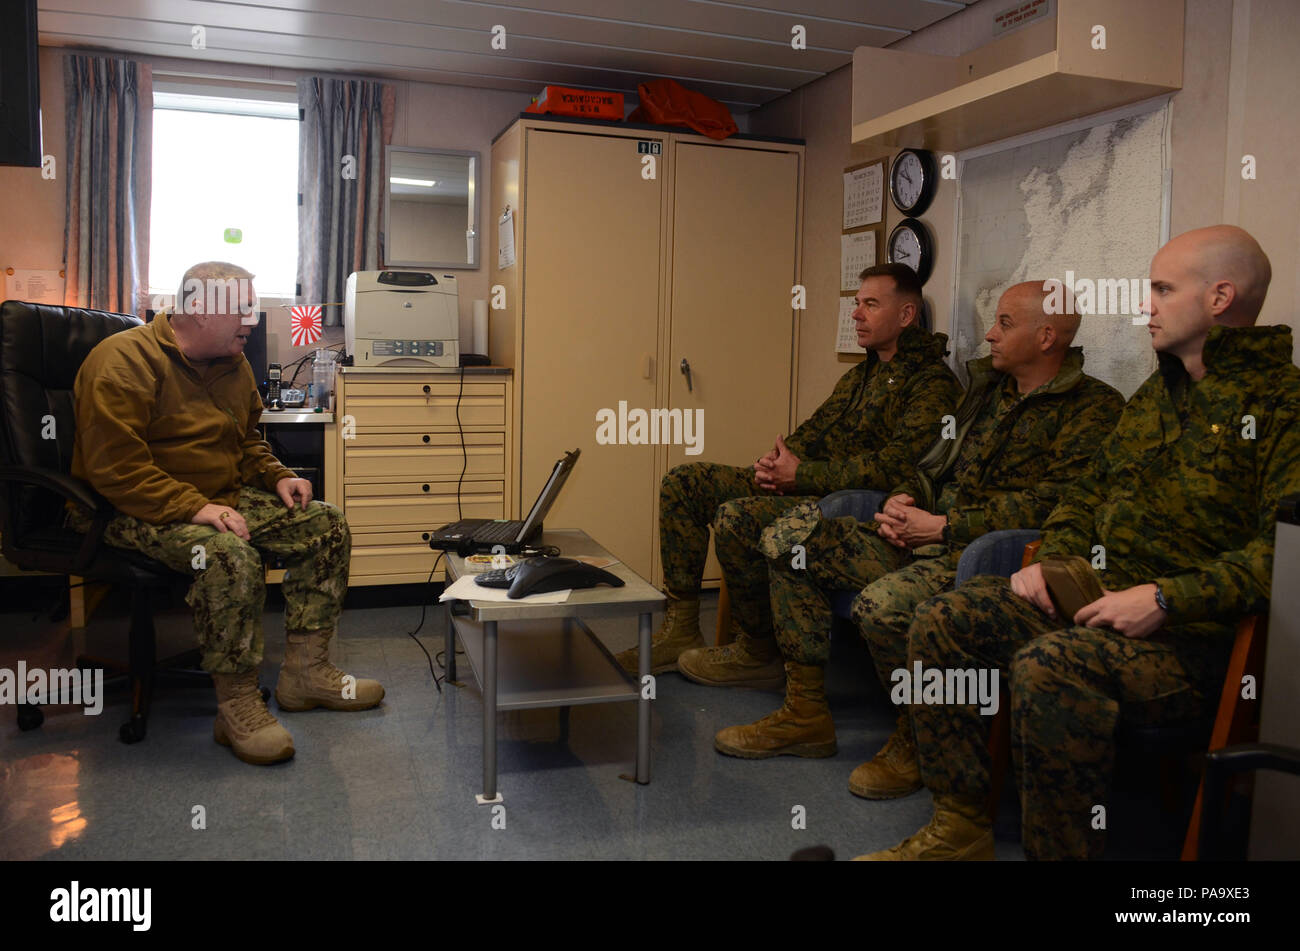 160308-N-WJ640-039 GWANGYANG, South Korea (March 8, 2016) Navy Capt. Robert Rochford, commodore of Maritime Prepositioning Ships Squadron Three, meets with Marines from Combat Logistics Regiment 35 (CLR-35) on USNS Sacagawea (T-AKE 2) here March 8. CLR-35 will be joining the Sacagawea later this week in Pohang as part of Exercise Ssang Yong 16, under the Exercise Freedom Banner 2016 directive. (U.S. Navy photo by Mass Communication Specialist 3rd Class Madailein Abbott/Released) Stock Photo